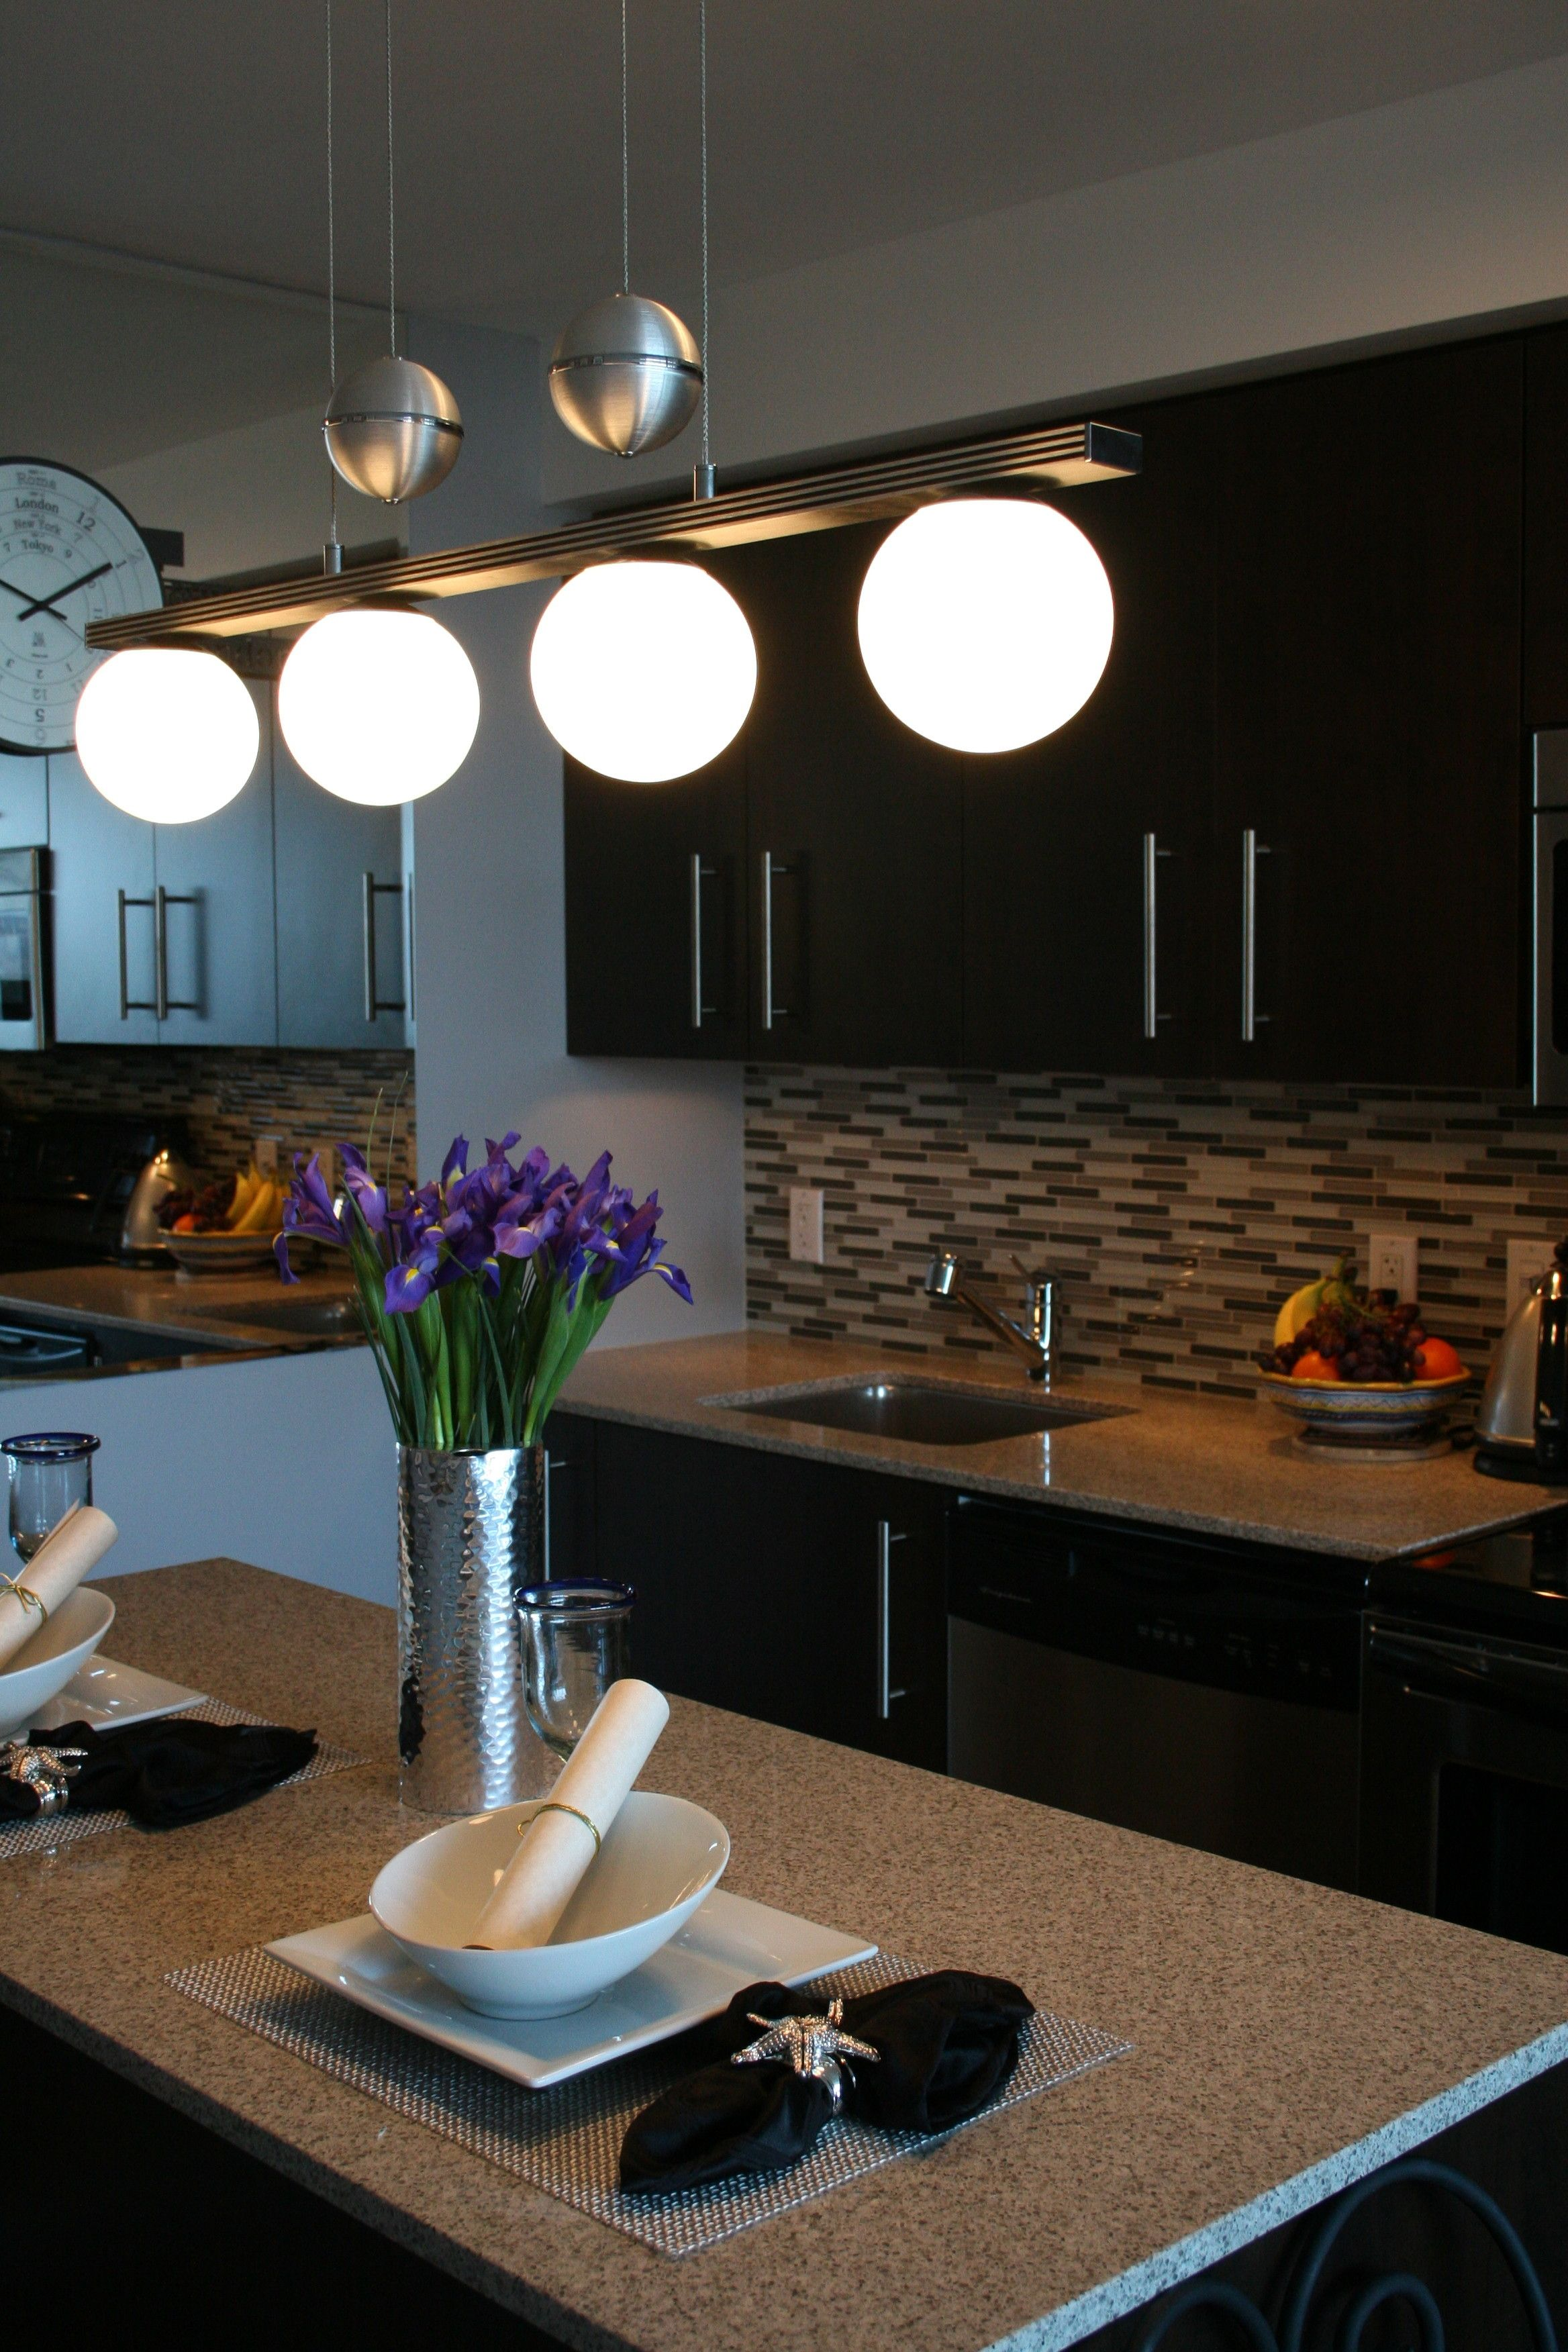 Kitchen Island Love the place setting